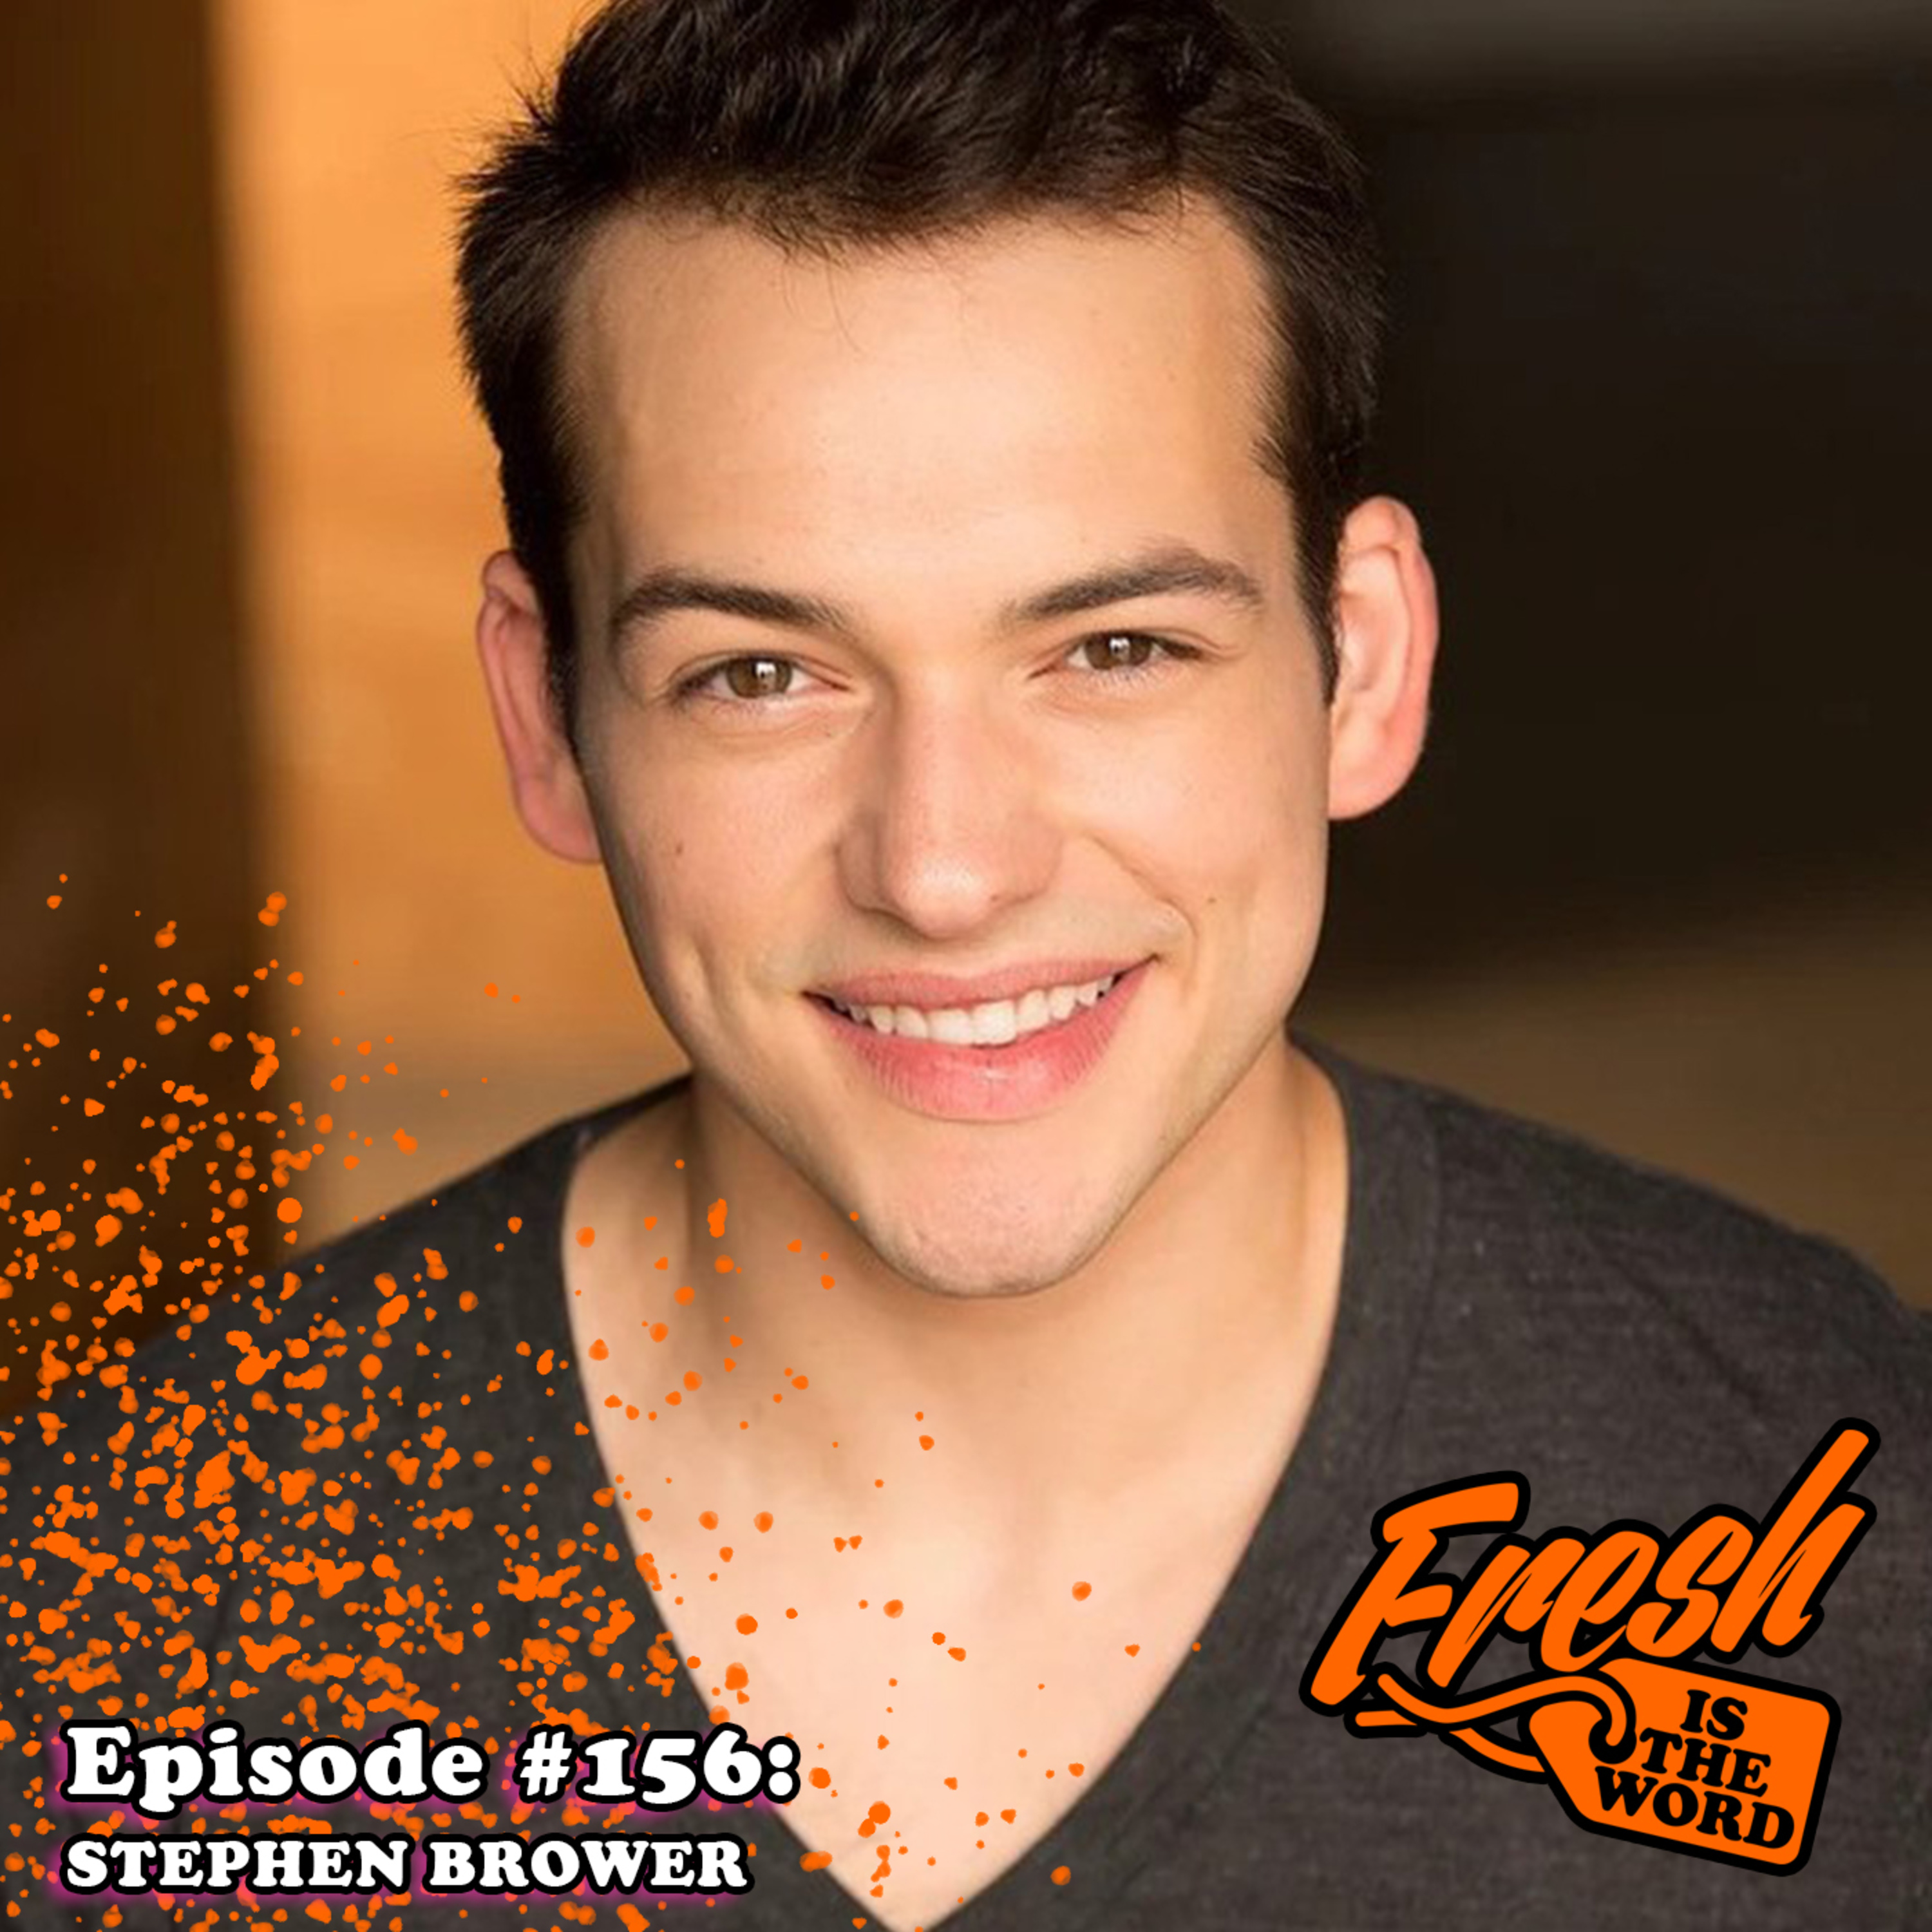 """Episode #156: Stephen Brower - Plays """"Dmitry"""" on Touring Cast of 'Anastasia: The New Broadway Musical', Detroit Debut June 11th at Fisher Theatre Before Stops in Grand Rapids, Milwaukee, Madison"""